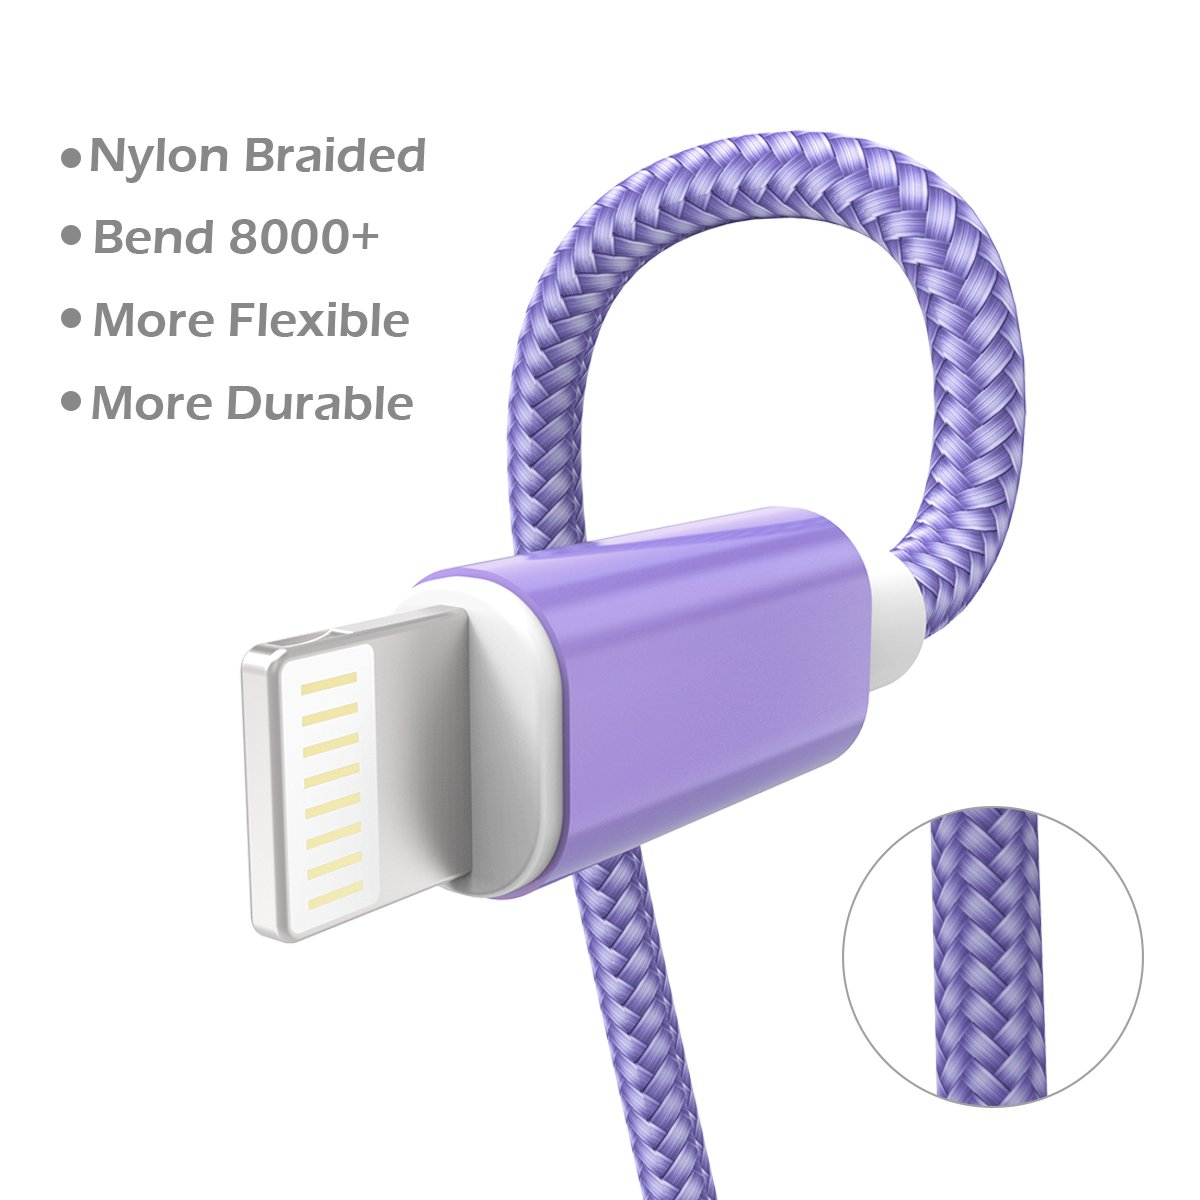 KidKer 4 Pack Lightning iPhone Charger Cables 3ft 3ft 6ft 10ft USB Chagring Certified Nylon Braided Cord Short for iPhone 7 Plus 6S 6 5 5S 5C SE iPad Pro Air Mini 2 3 4 iPod Touch (Purple ( 4 Pack )) by KidKer (Image #3)